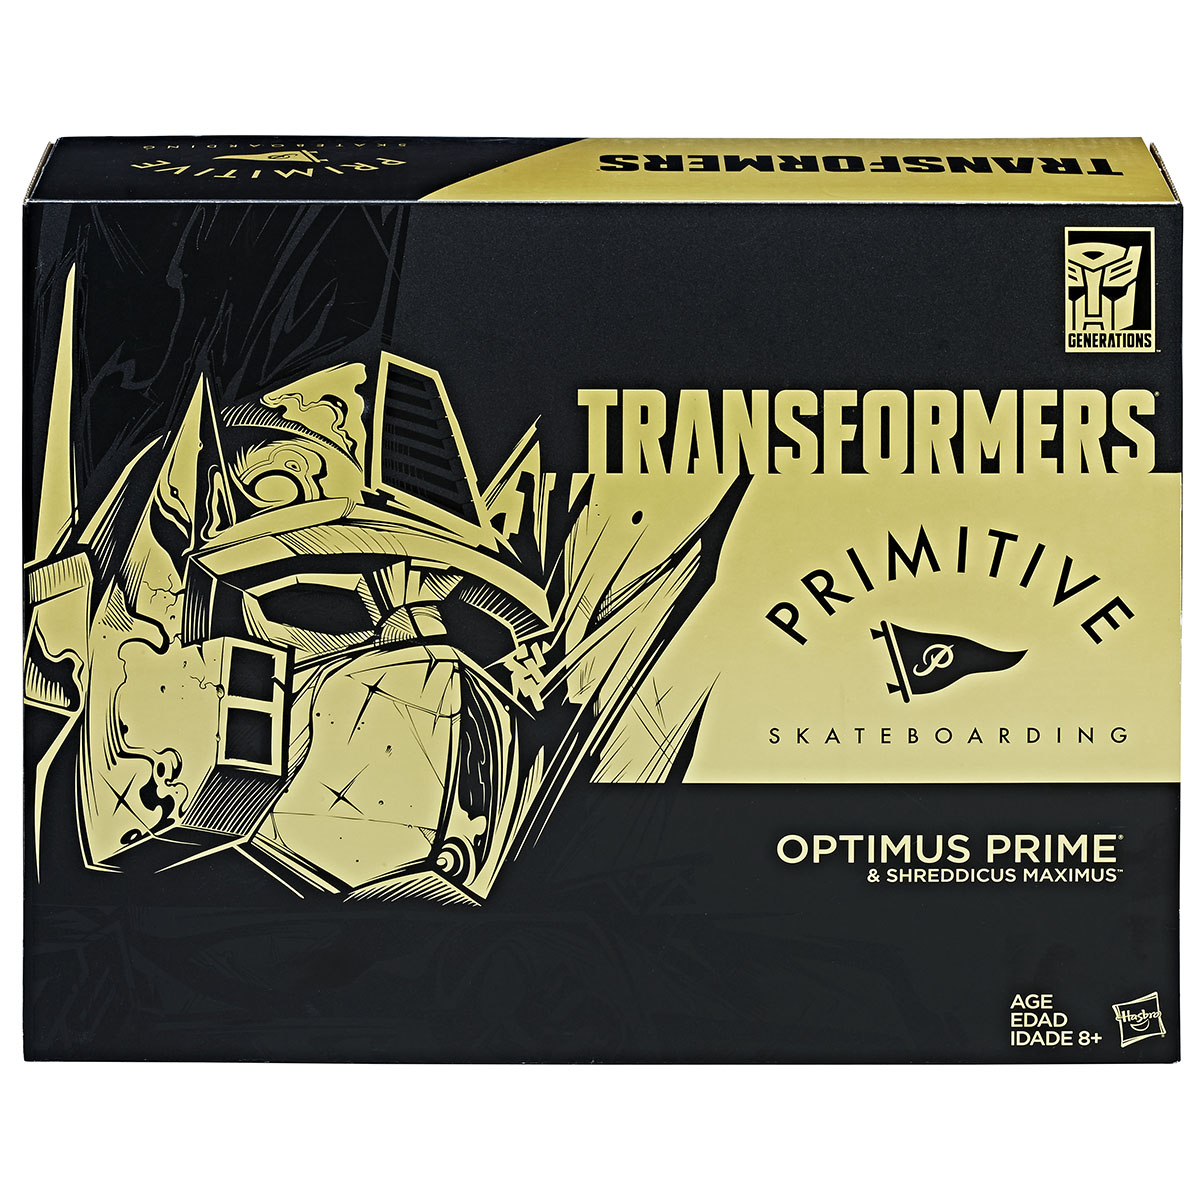 Hasbro: Transformers x Primitive Skateboarding SDCC 2017 Convention Exclusive!